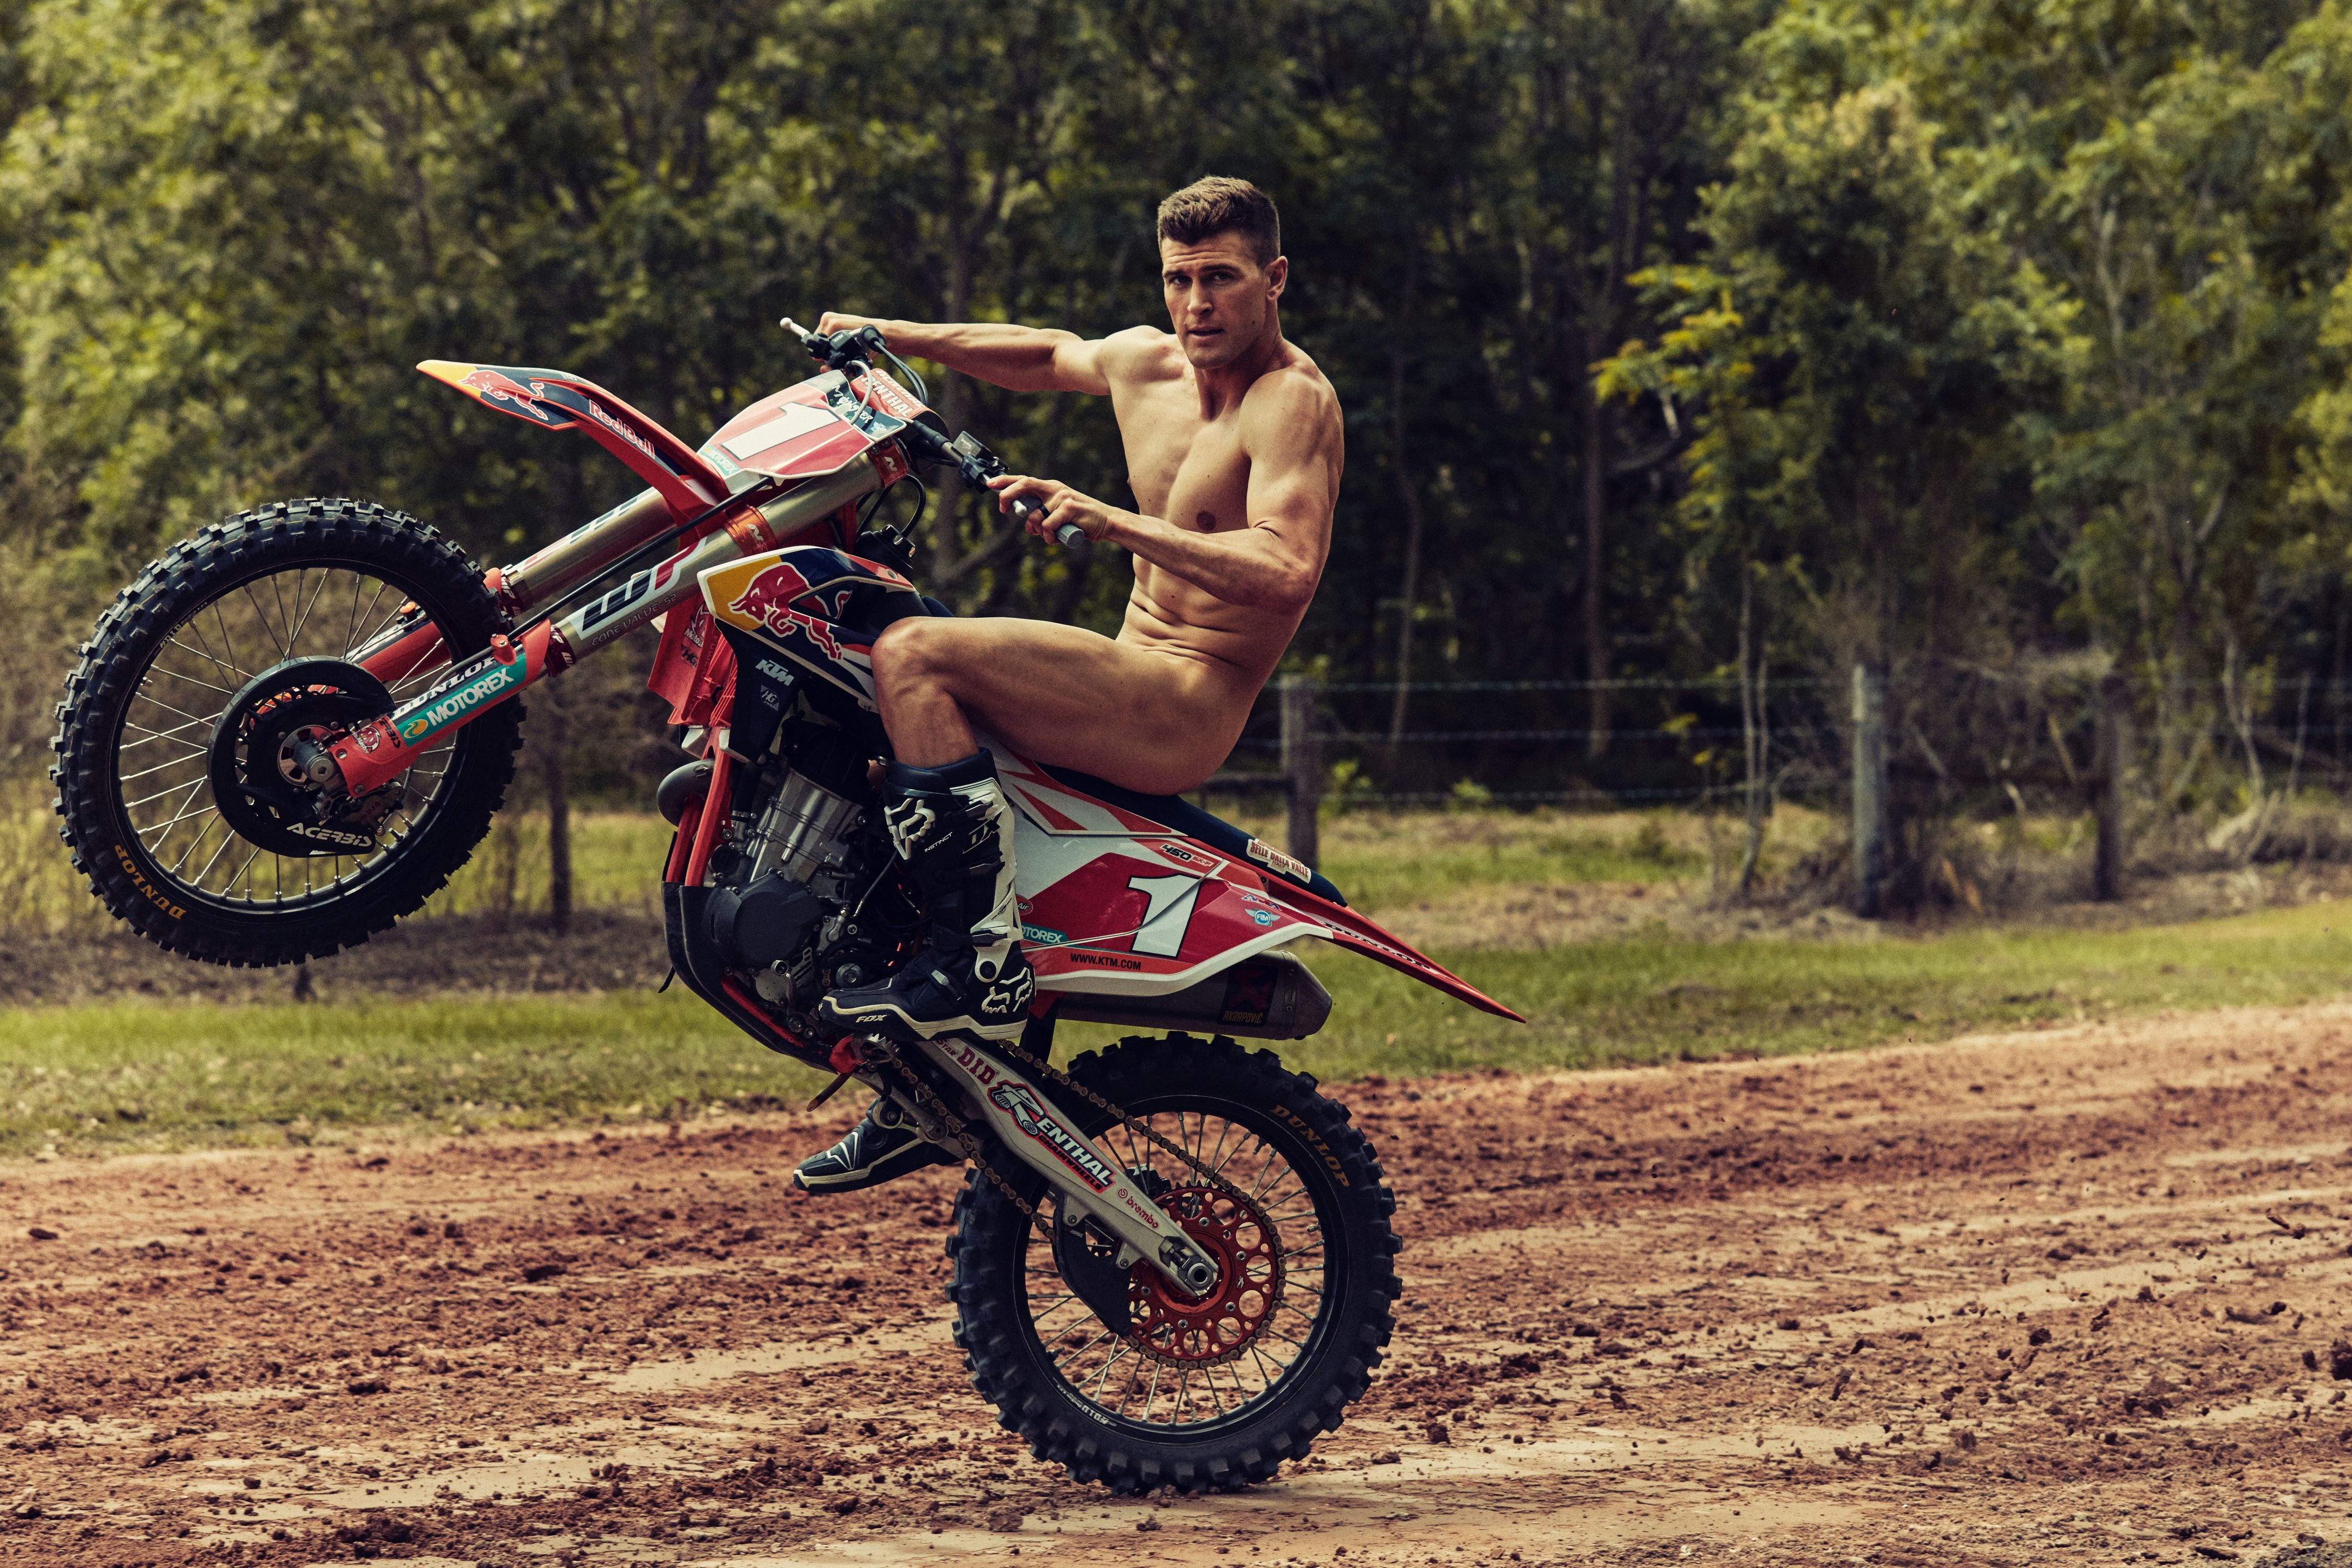 First Hardcore Photos Of Naked Men On Motorcycles